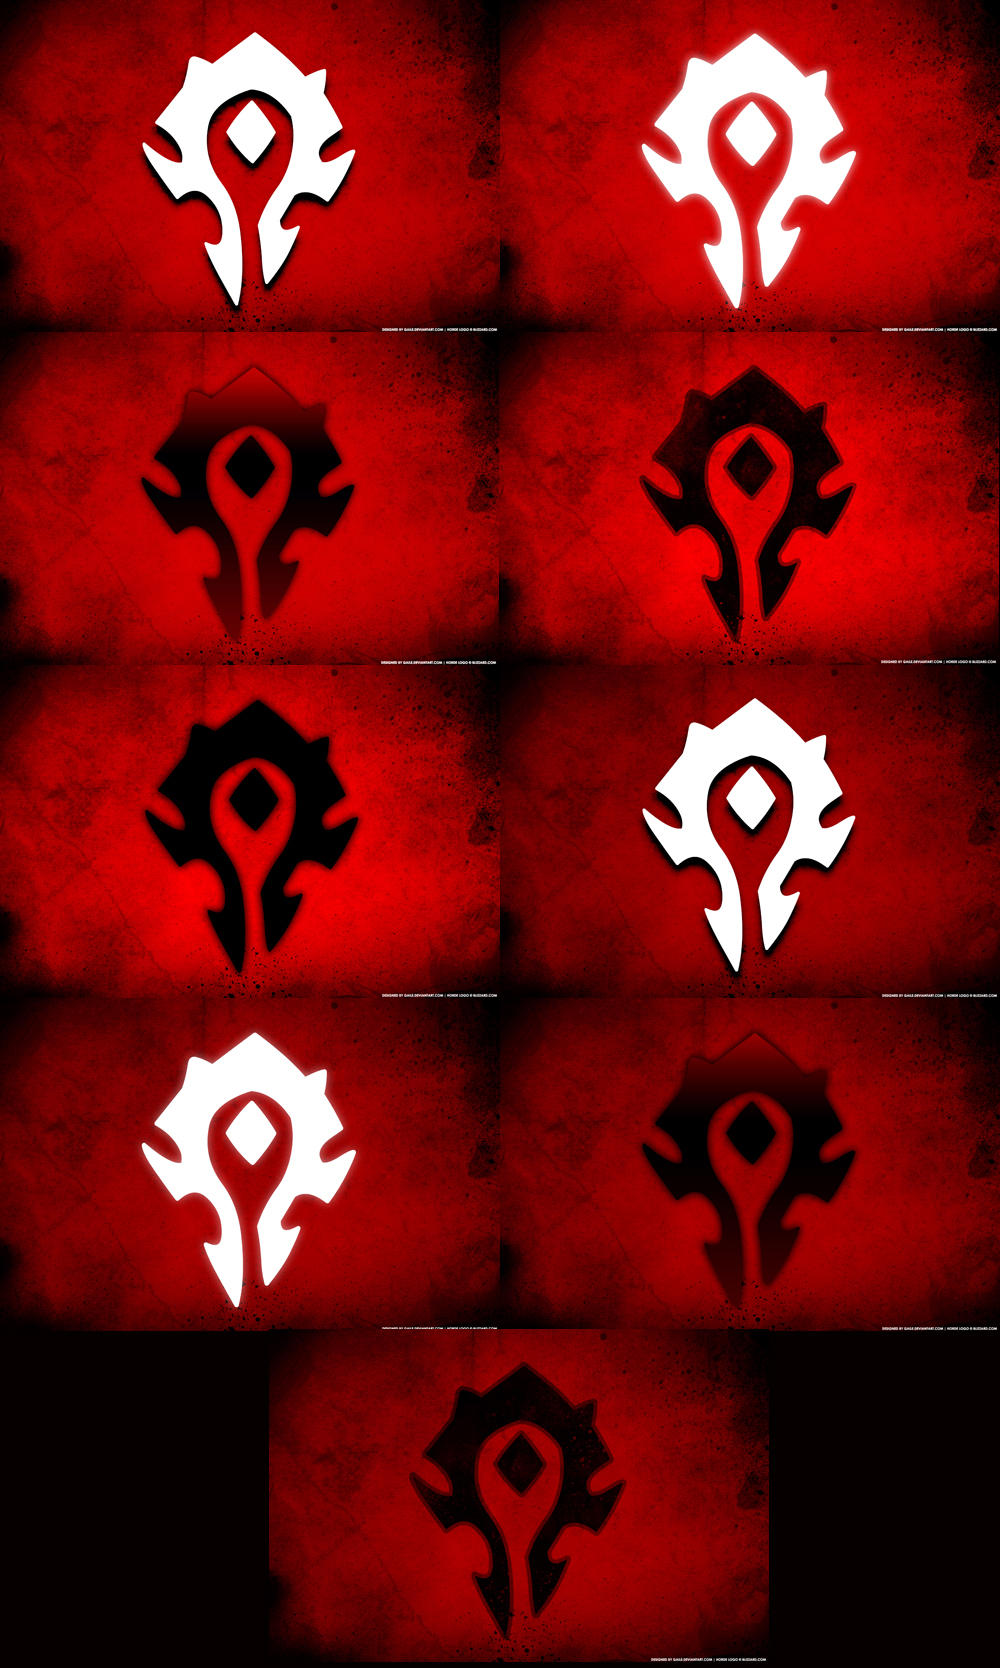 Horde The Pro Side By Gaile On Deviantart